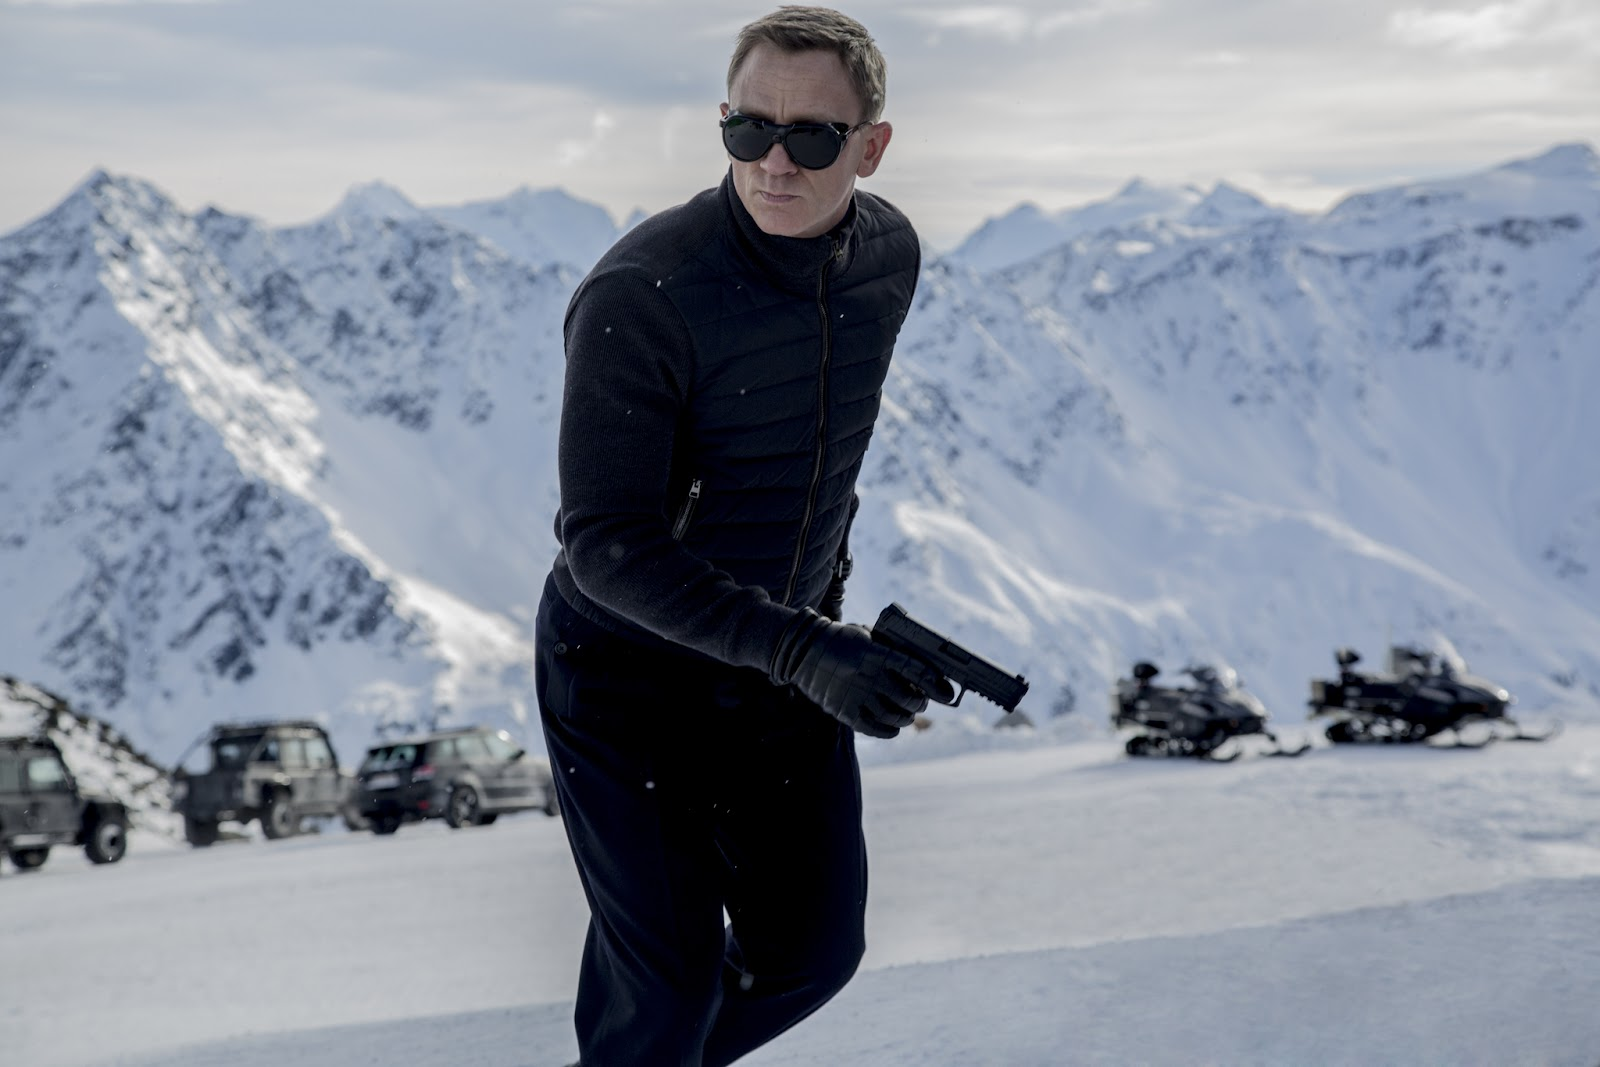 First Look of Daniel Craig as James Bond in Spectre